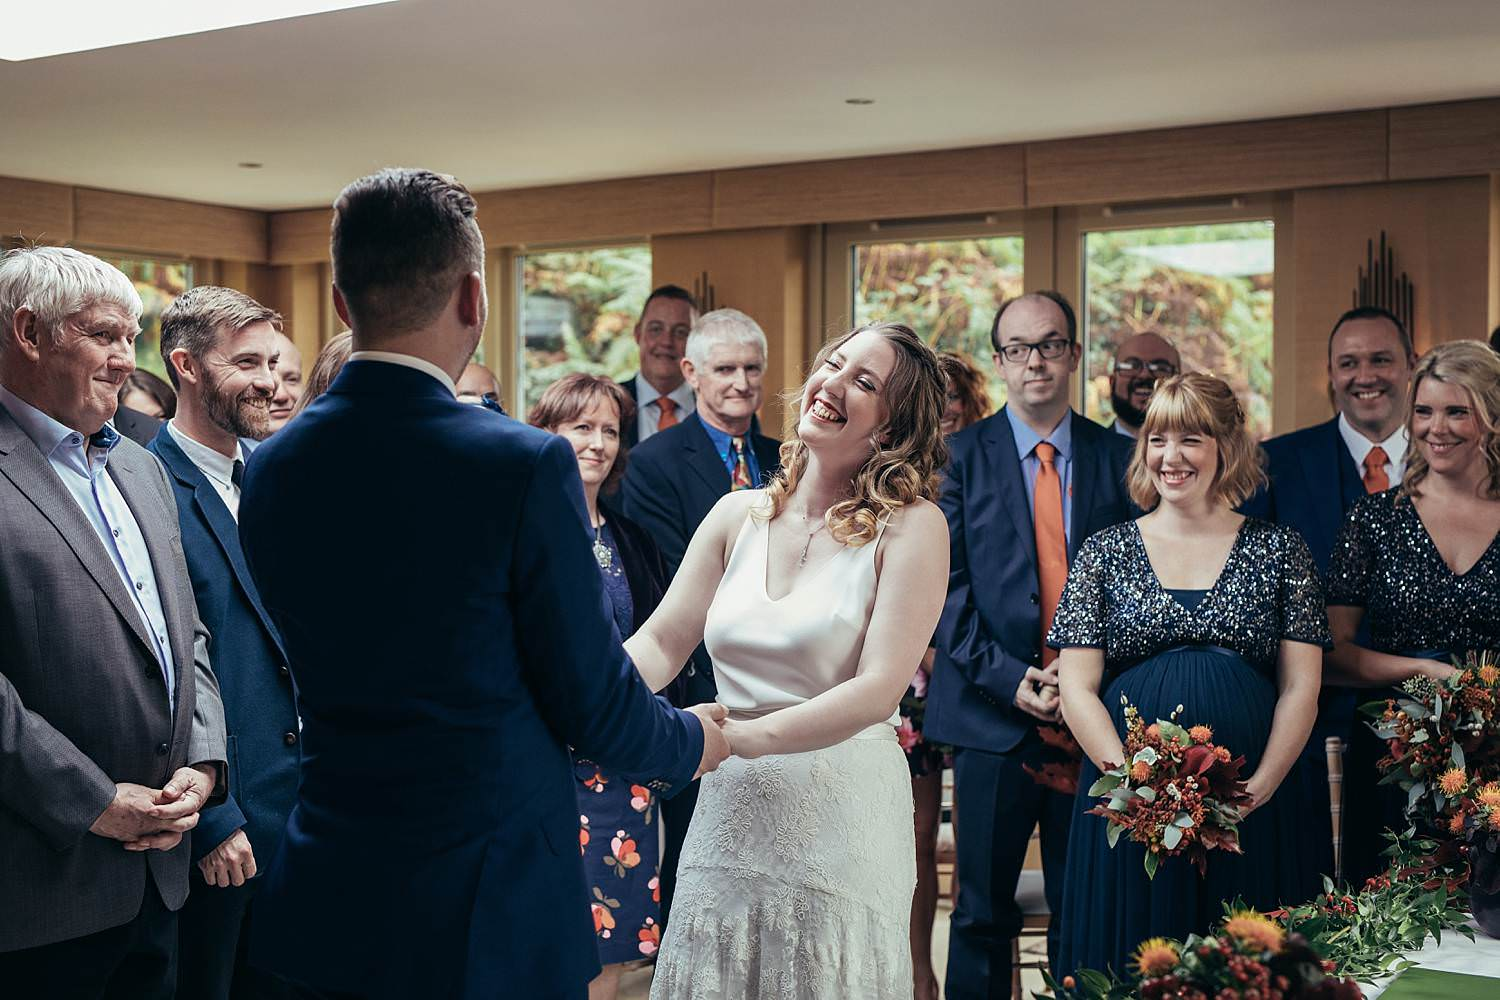 Gilpin Lake House civil ceremony. Bride and groom laughing